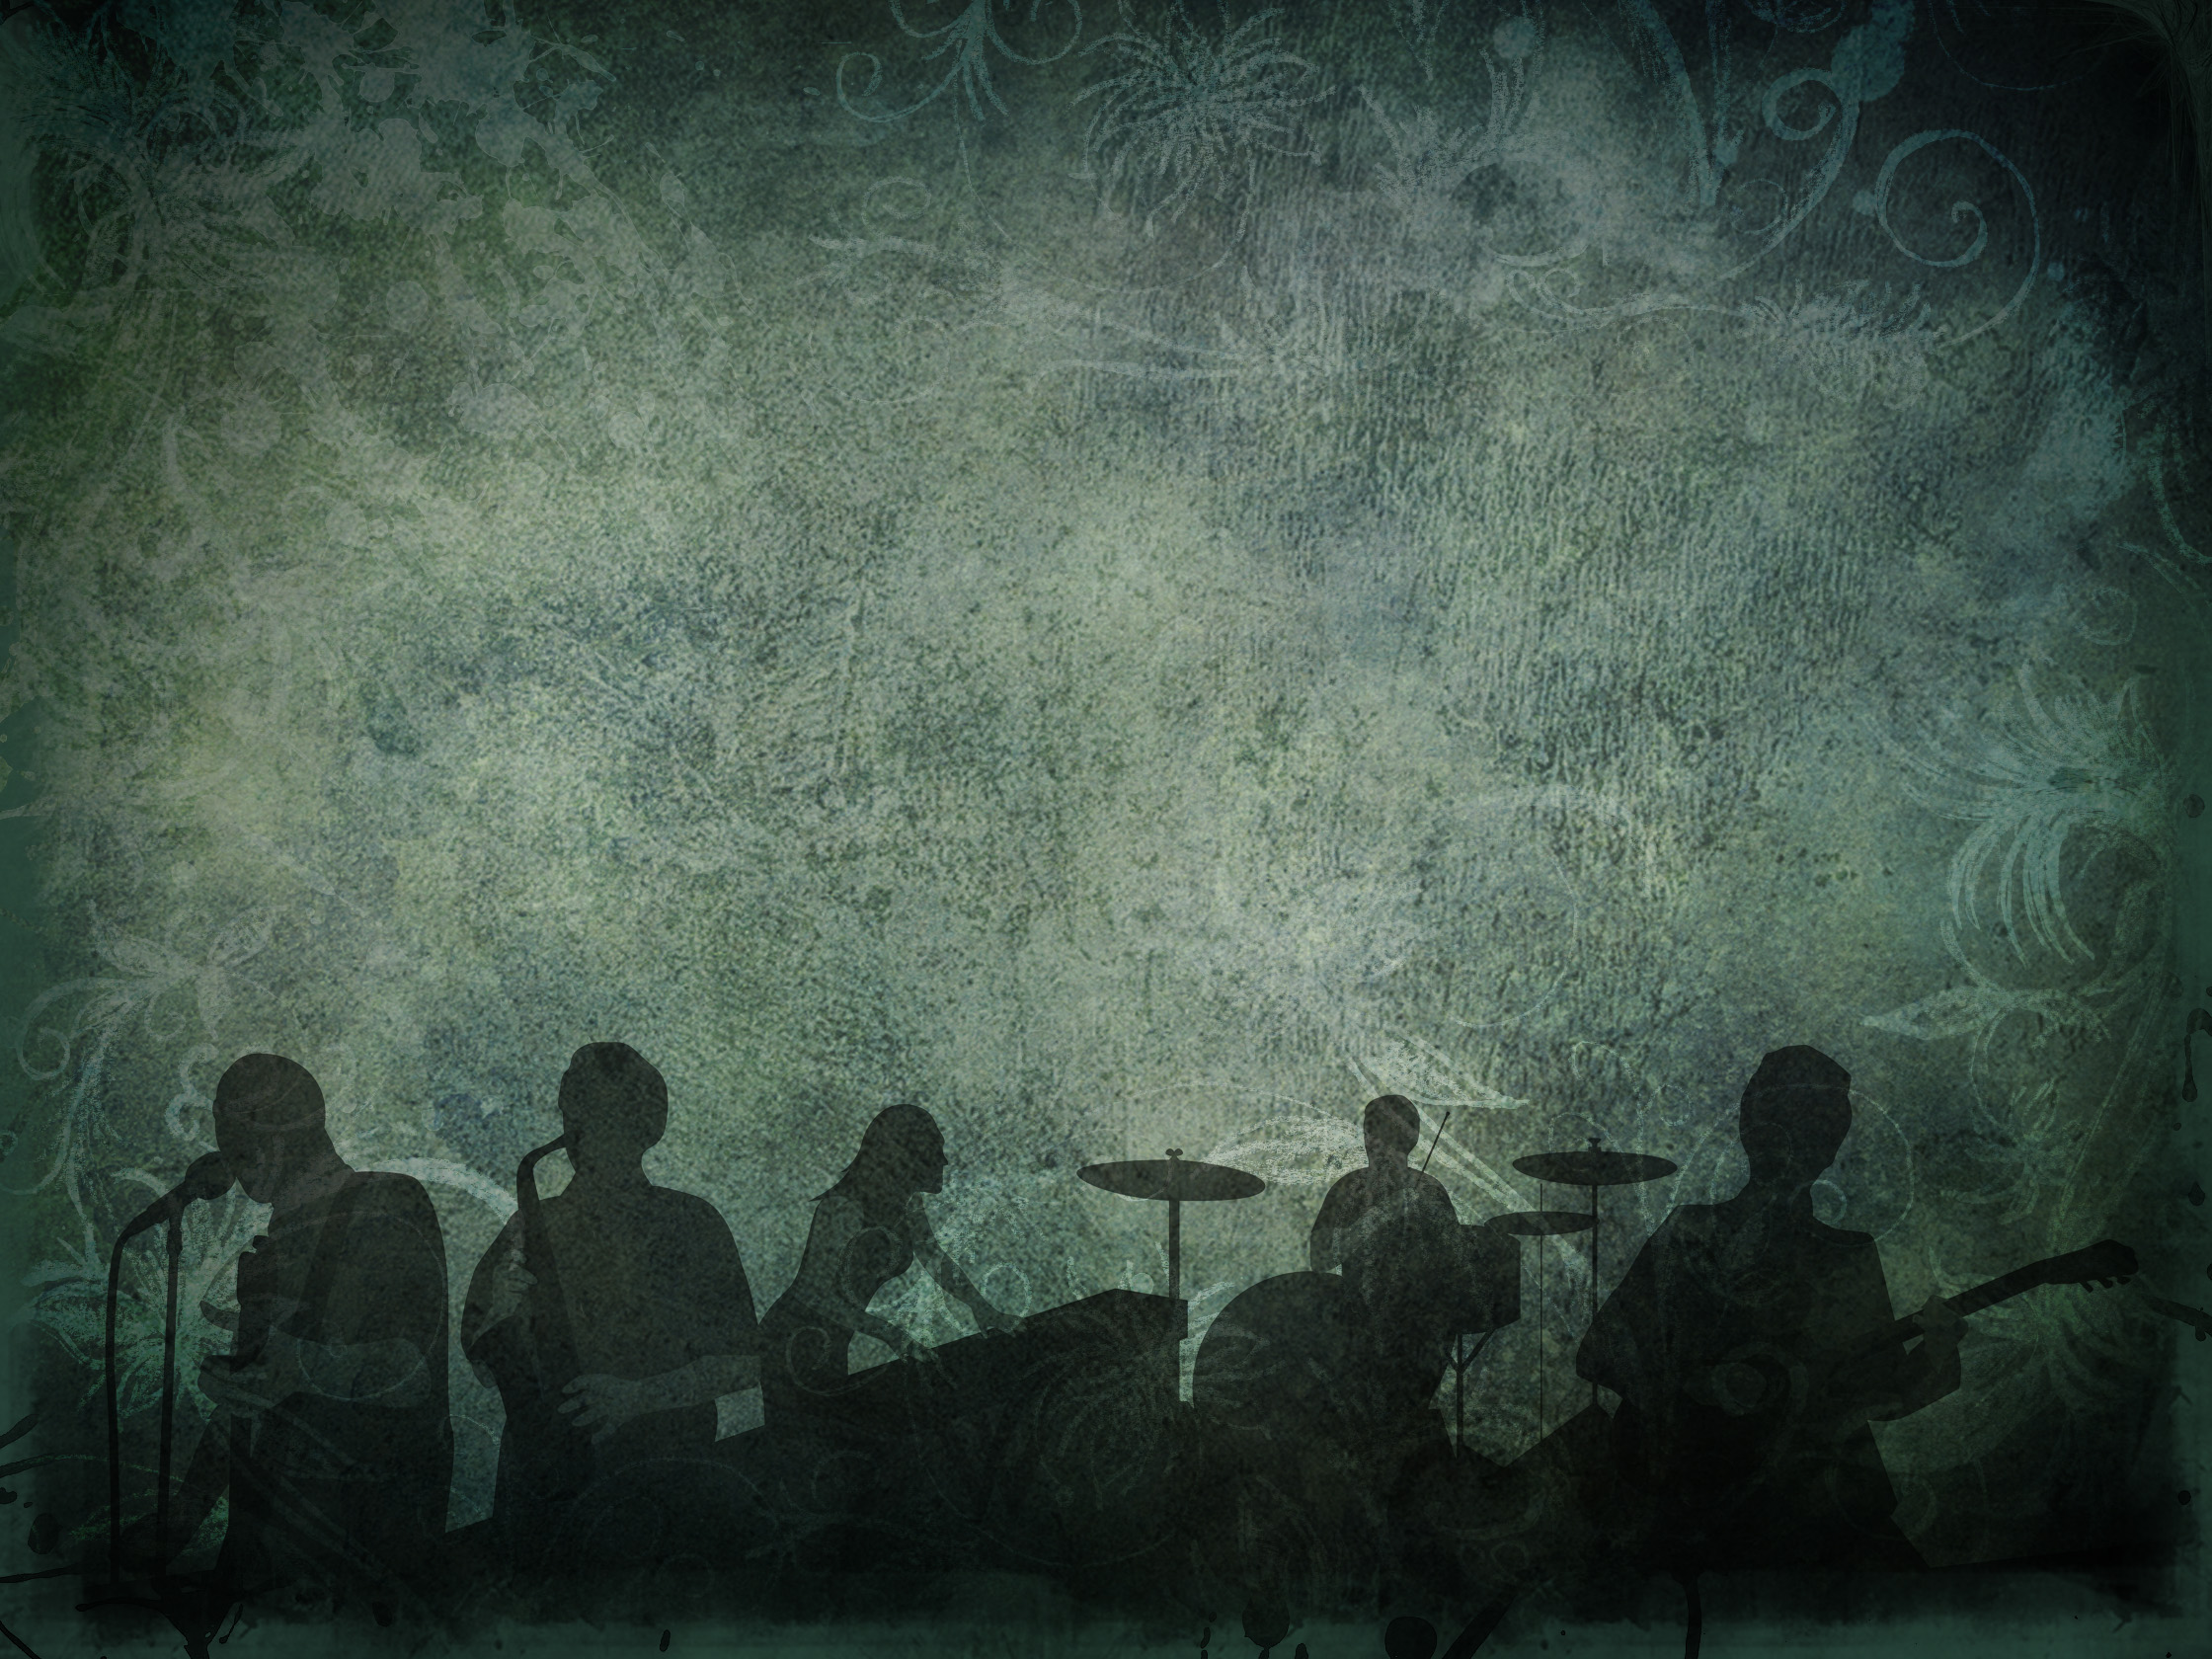 Praise And Worship Backgrounds For Powerpoint Worship backgrounds 2240x1680